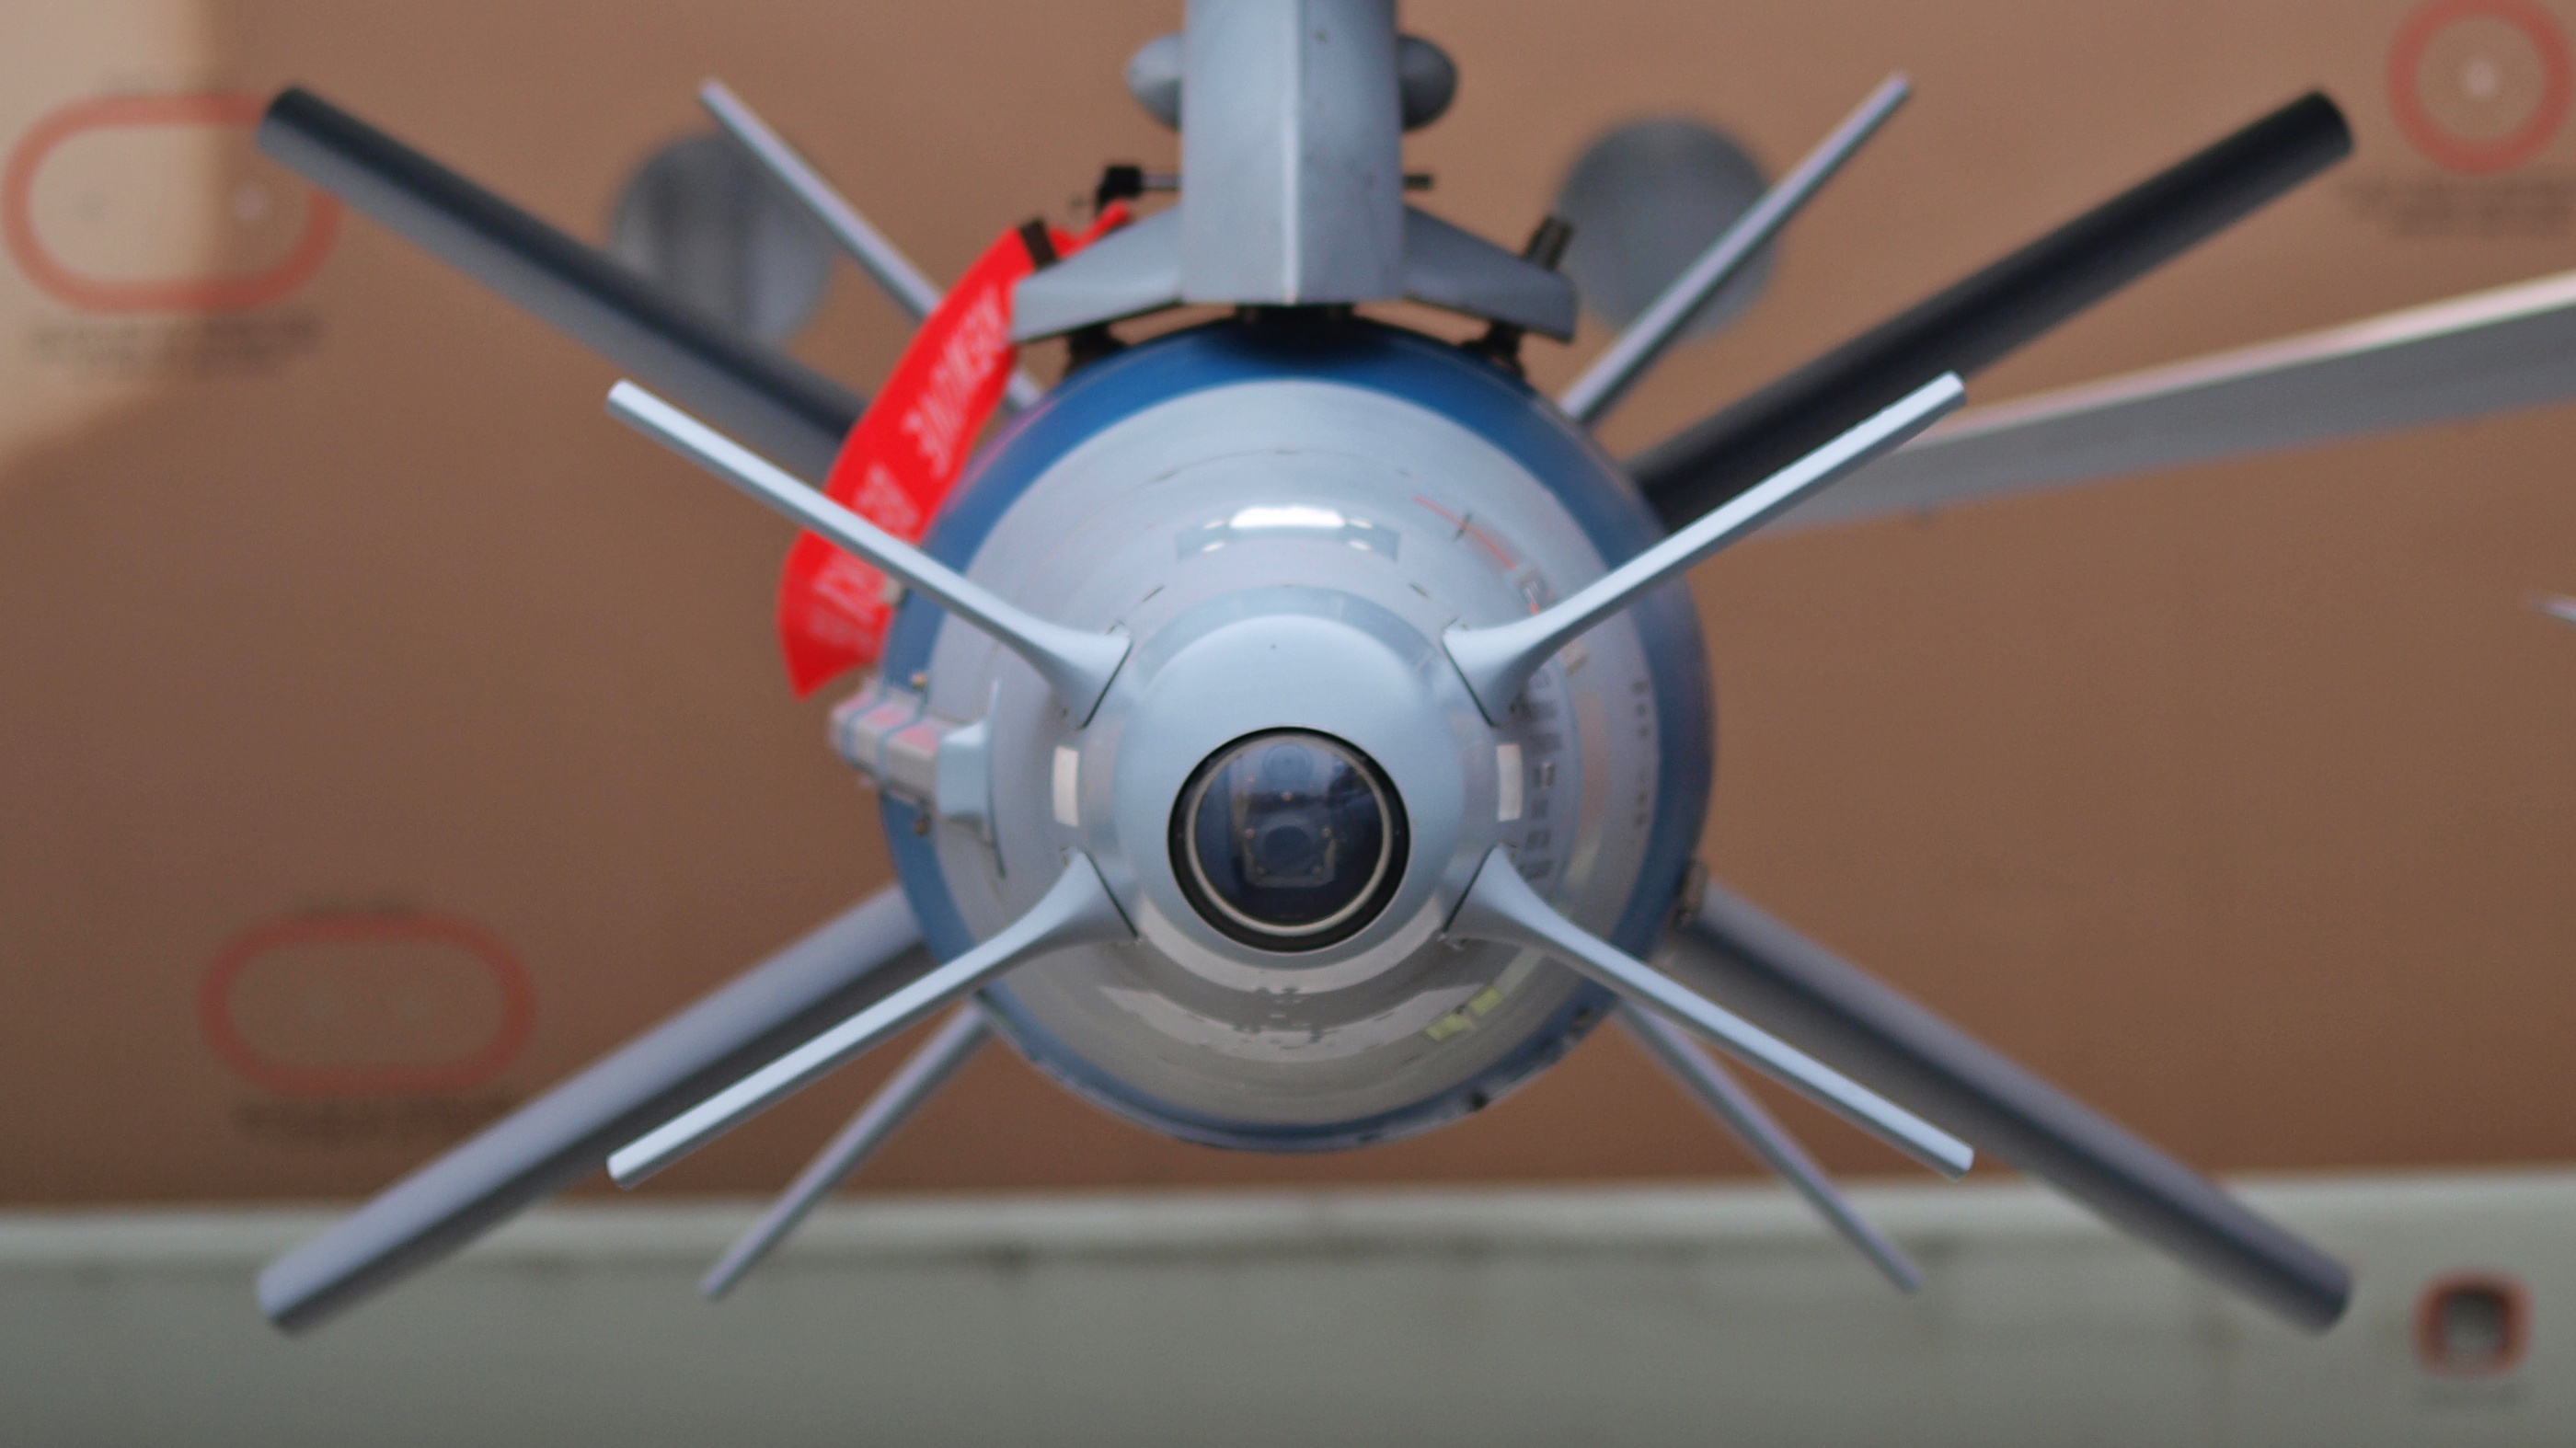 Indian Air Force Used Israeli-Made Heavy Guided Bombs In Its Attack On Pakistan